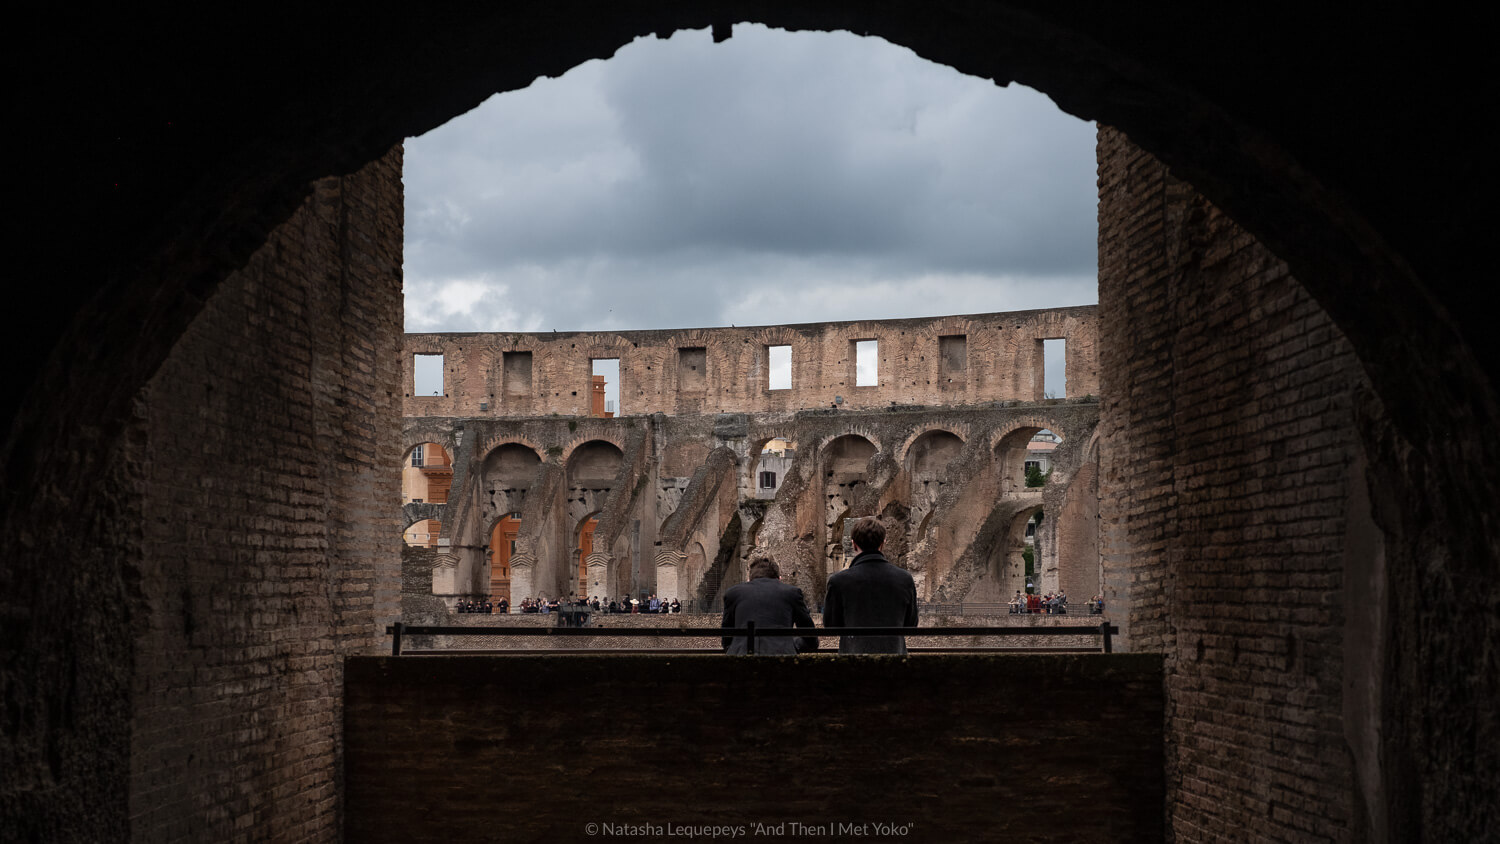 """Men looking out in the Colosseum, Rome. Travel photography and guide by © Natasha Lequepeys for """"And Then I Met Yoko"""". #rome #italy #travelblog #travelphotography"""